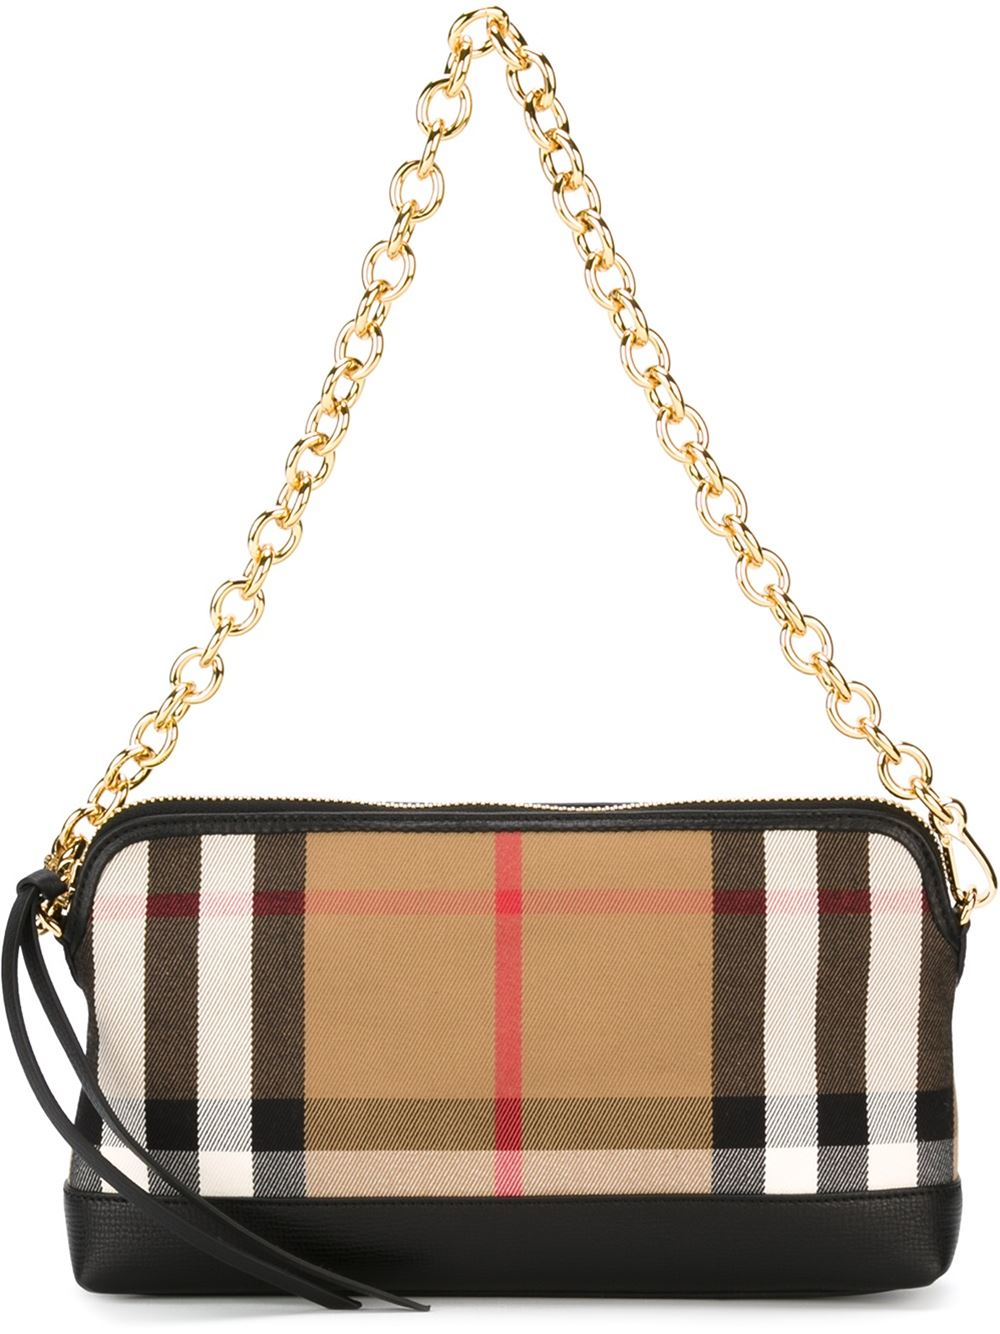 burberry checked shoulder bag in black lyst